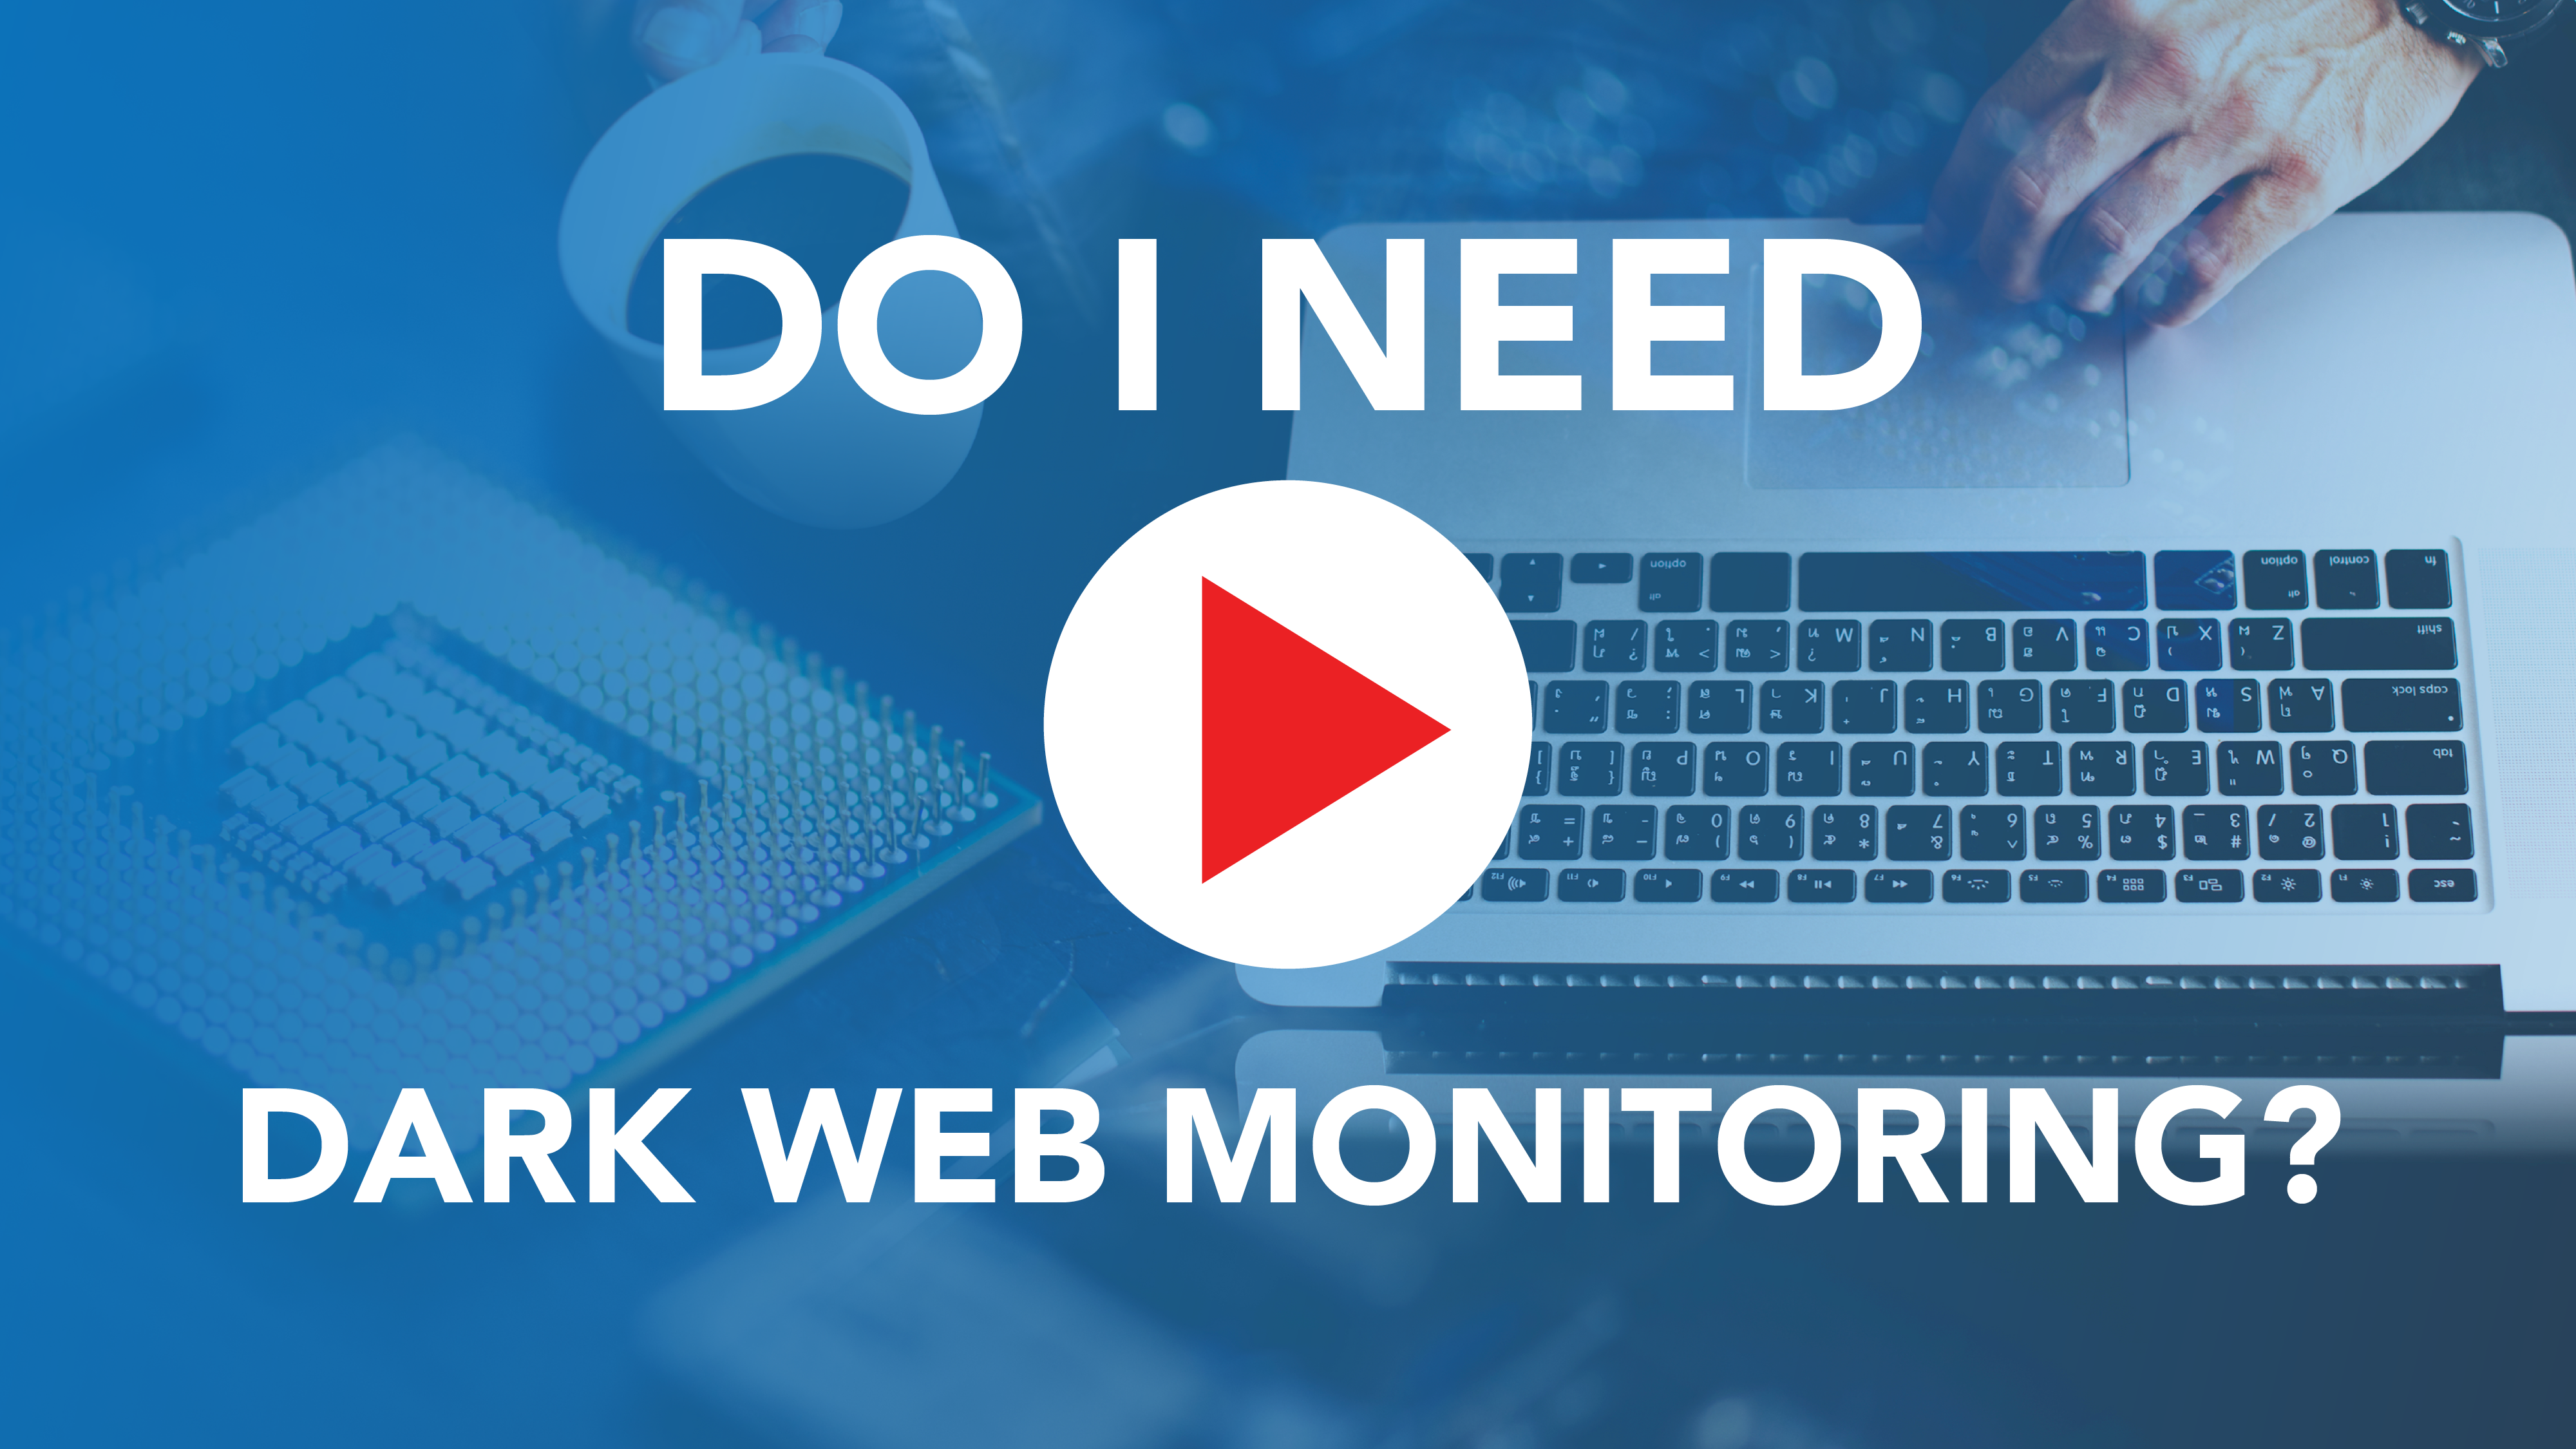 Preview - Do I Need Dark Web Monitoring